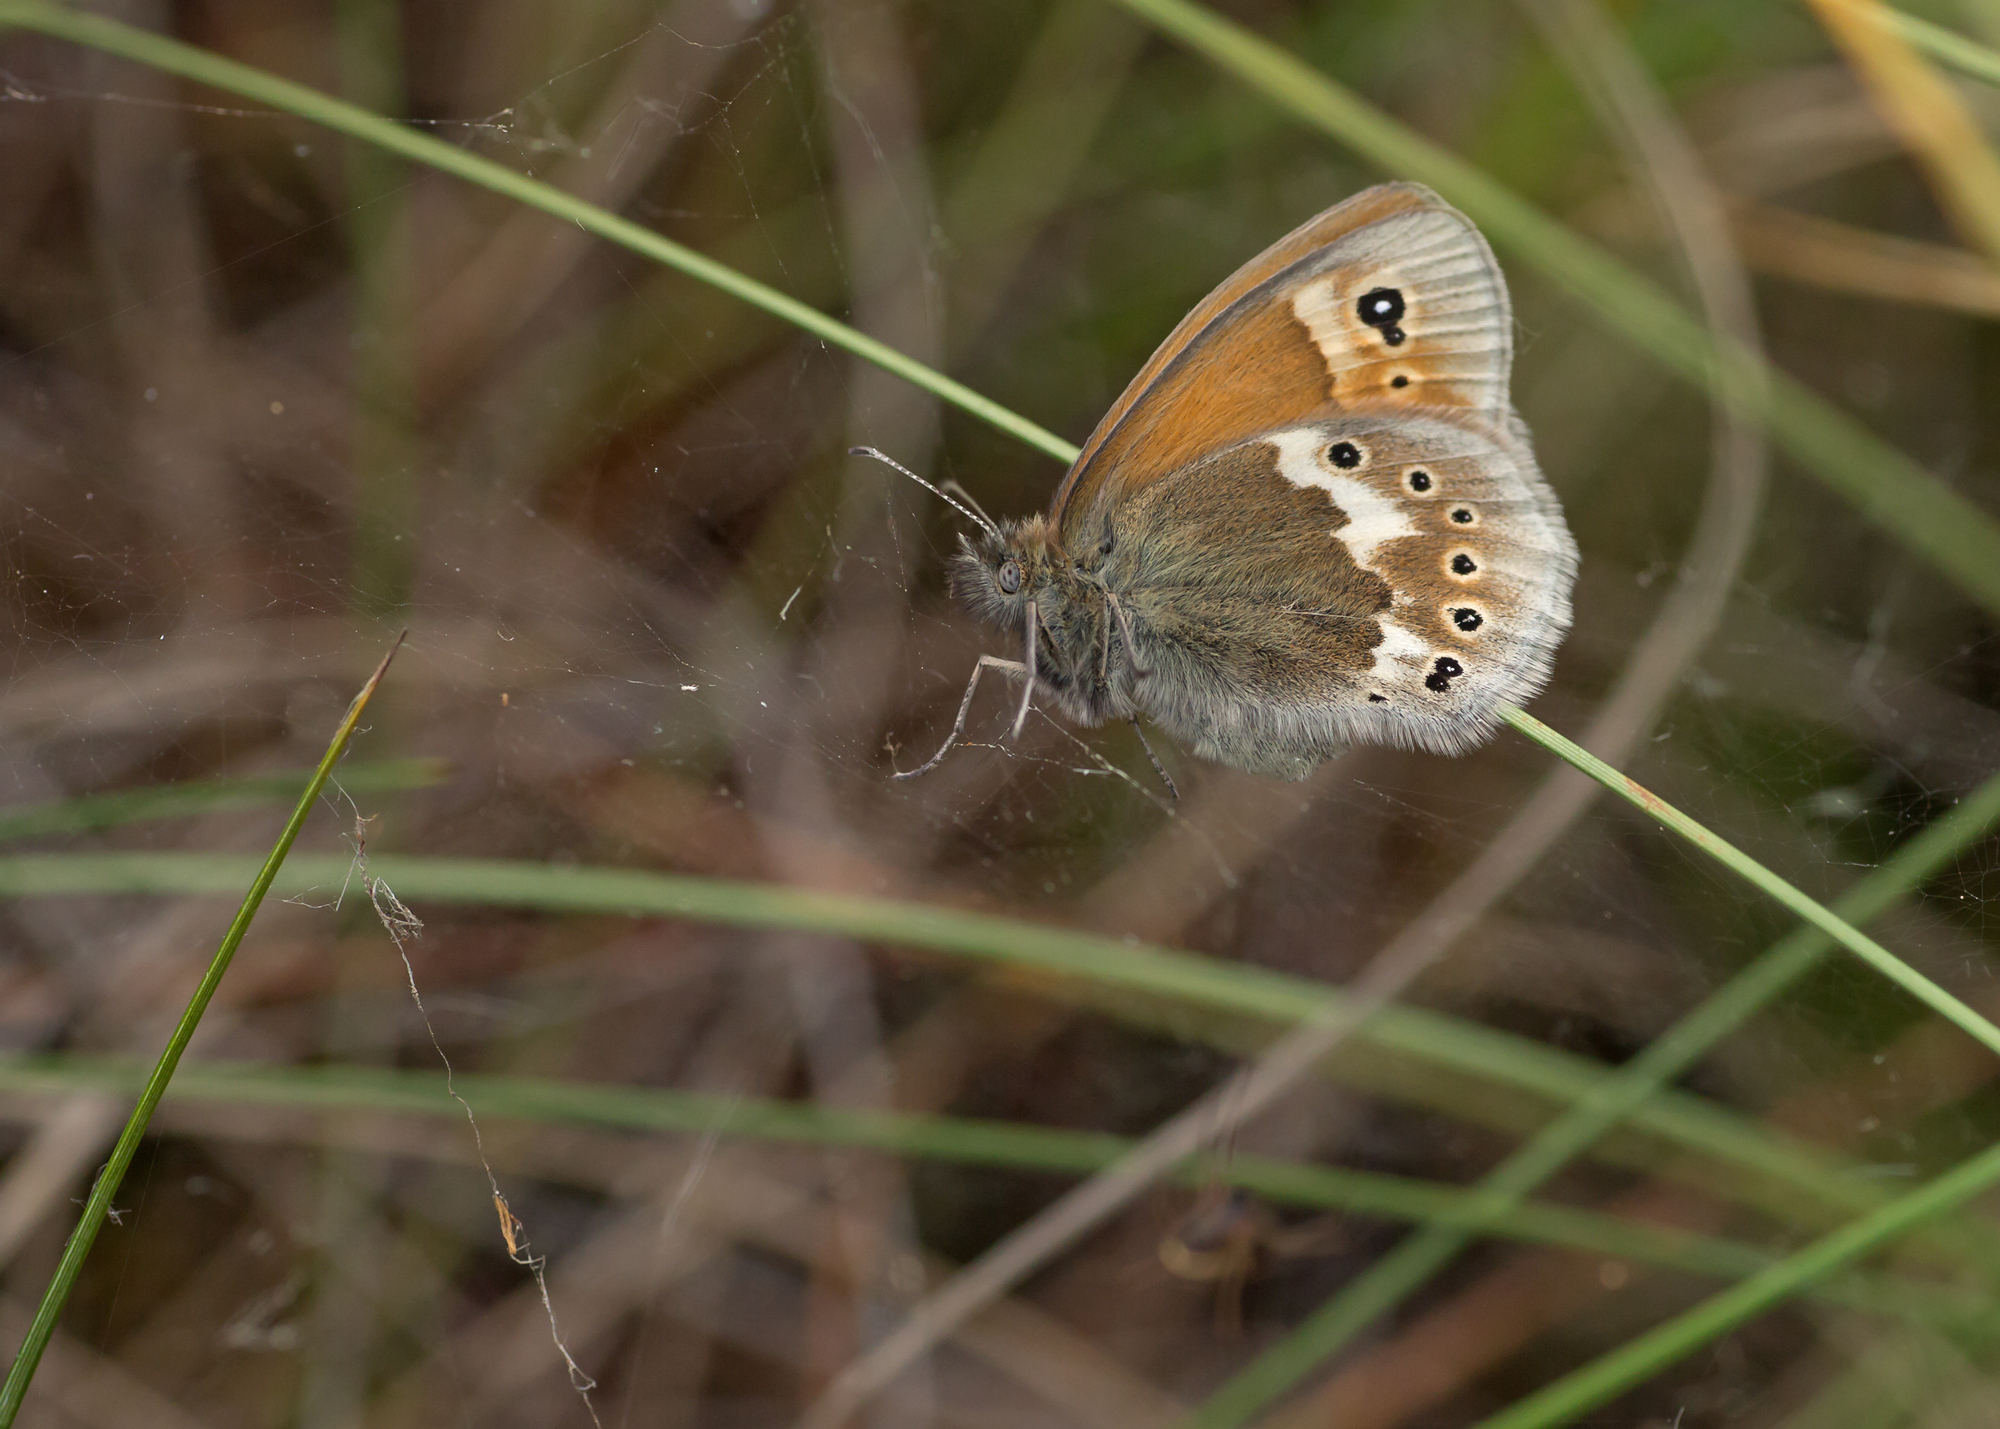 A Large Heath ssp davus dices with death in a spider's web, fortunately spider went hungry this time